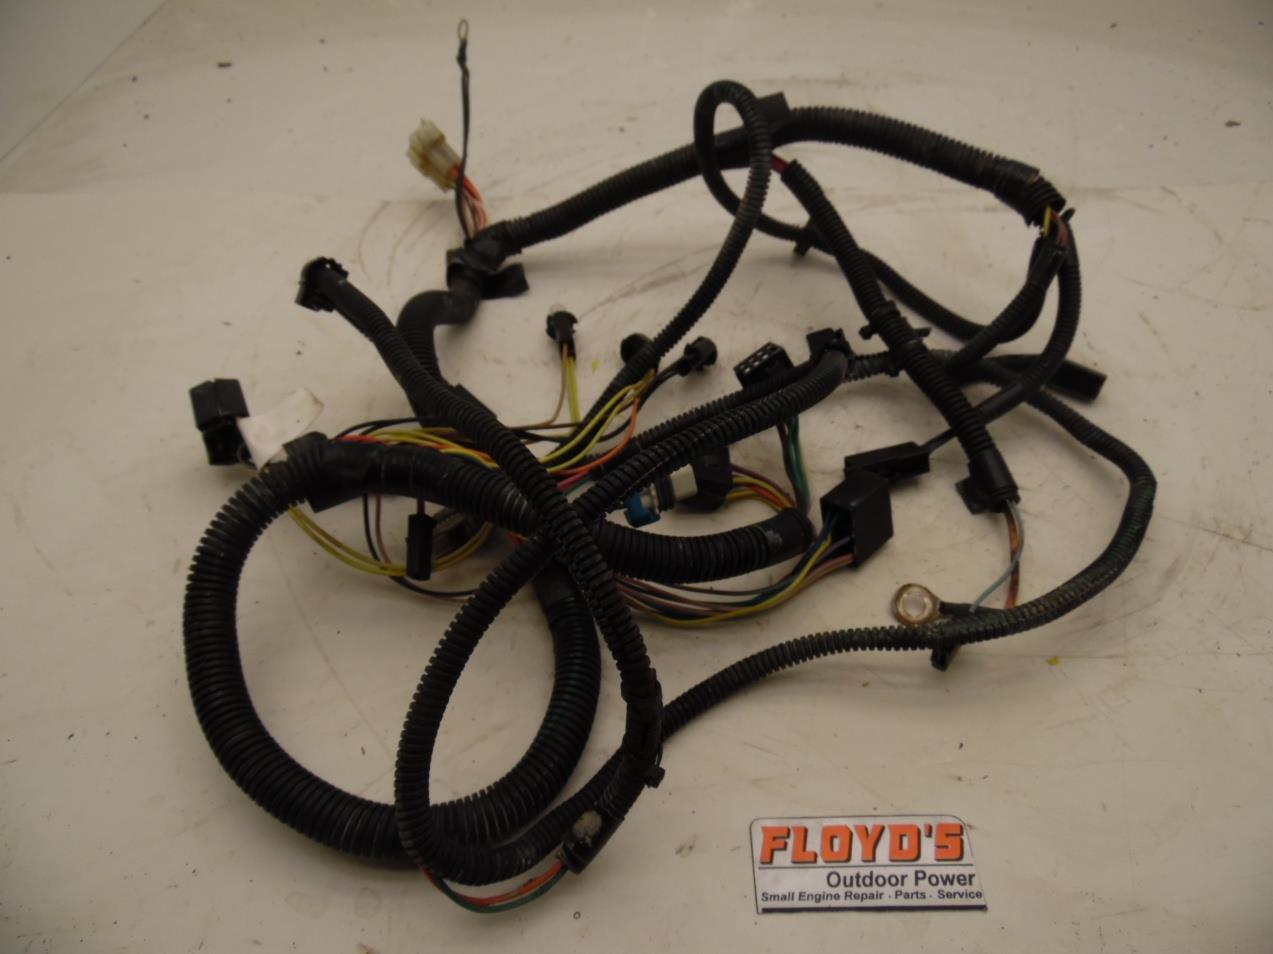 john deere lx266 lawn tractor main wiring harness am131690 ebayjohn deere lx266 lawn tractor main wiring harness am131690 main wiring harness has some wear but its in good condition and its fully functional